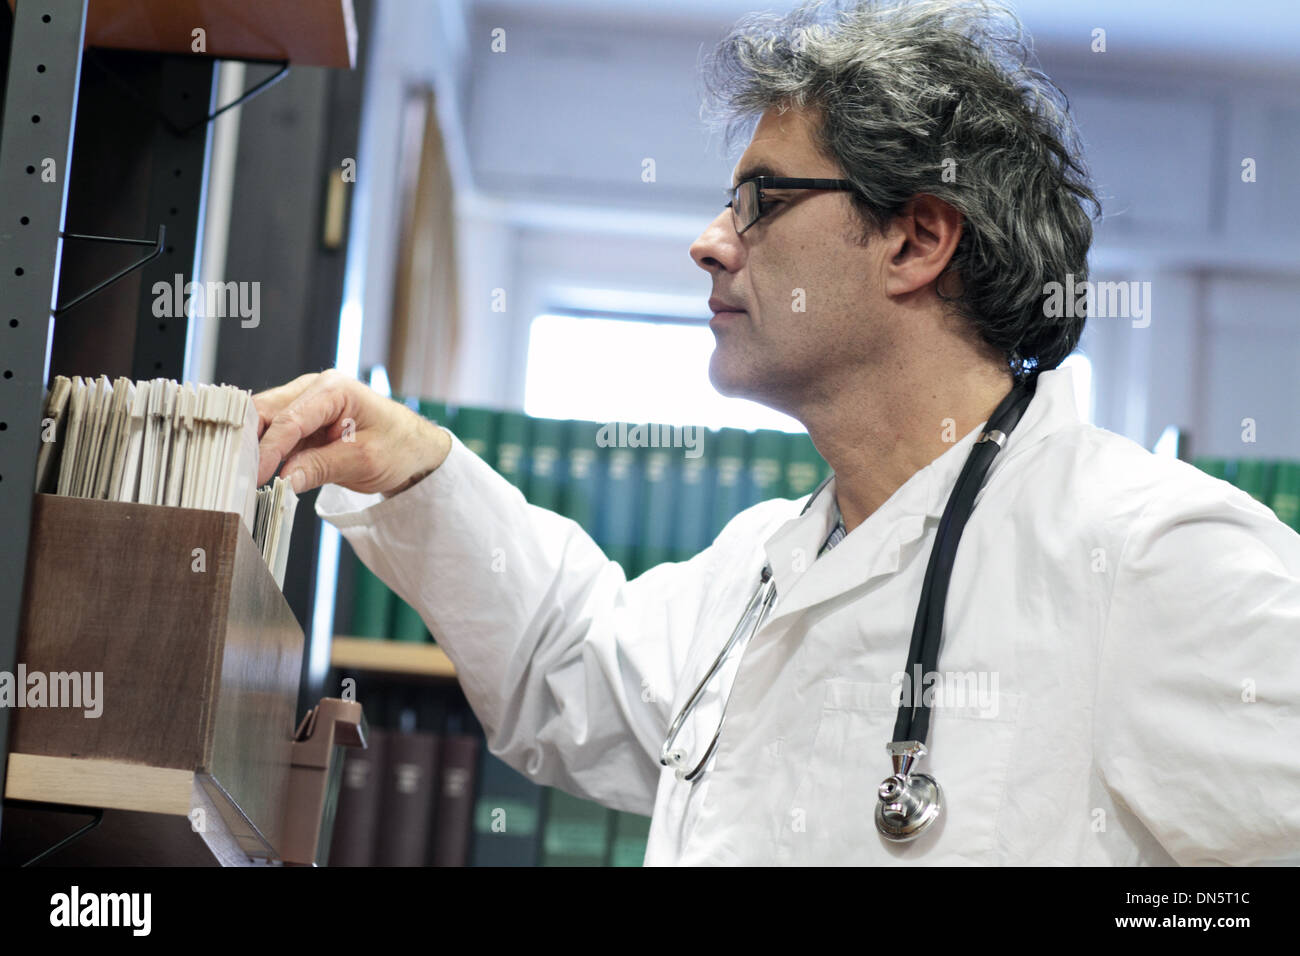 a doctor middle old man caucasian person is standing in a library - Stock Image